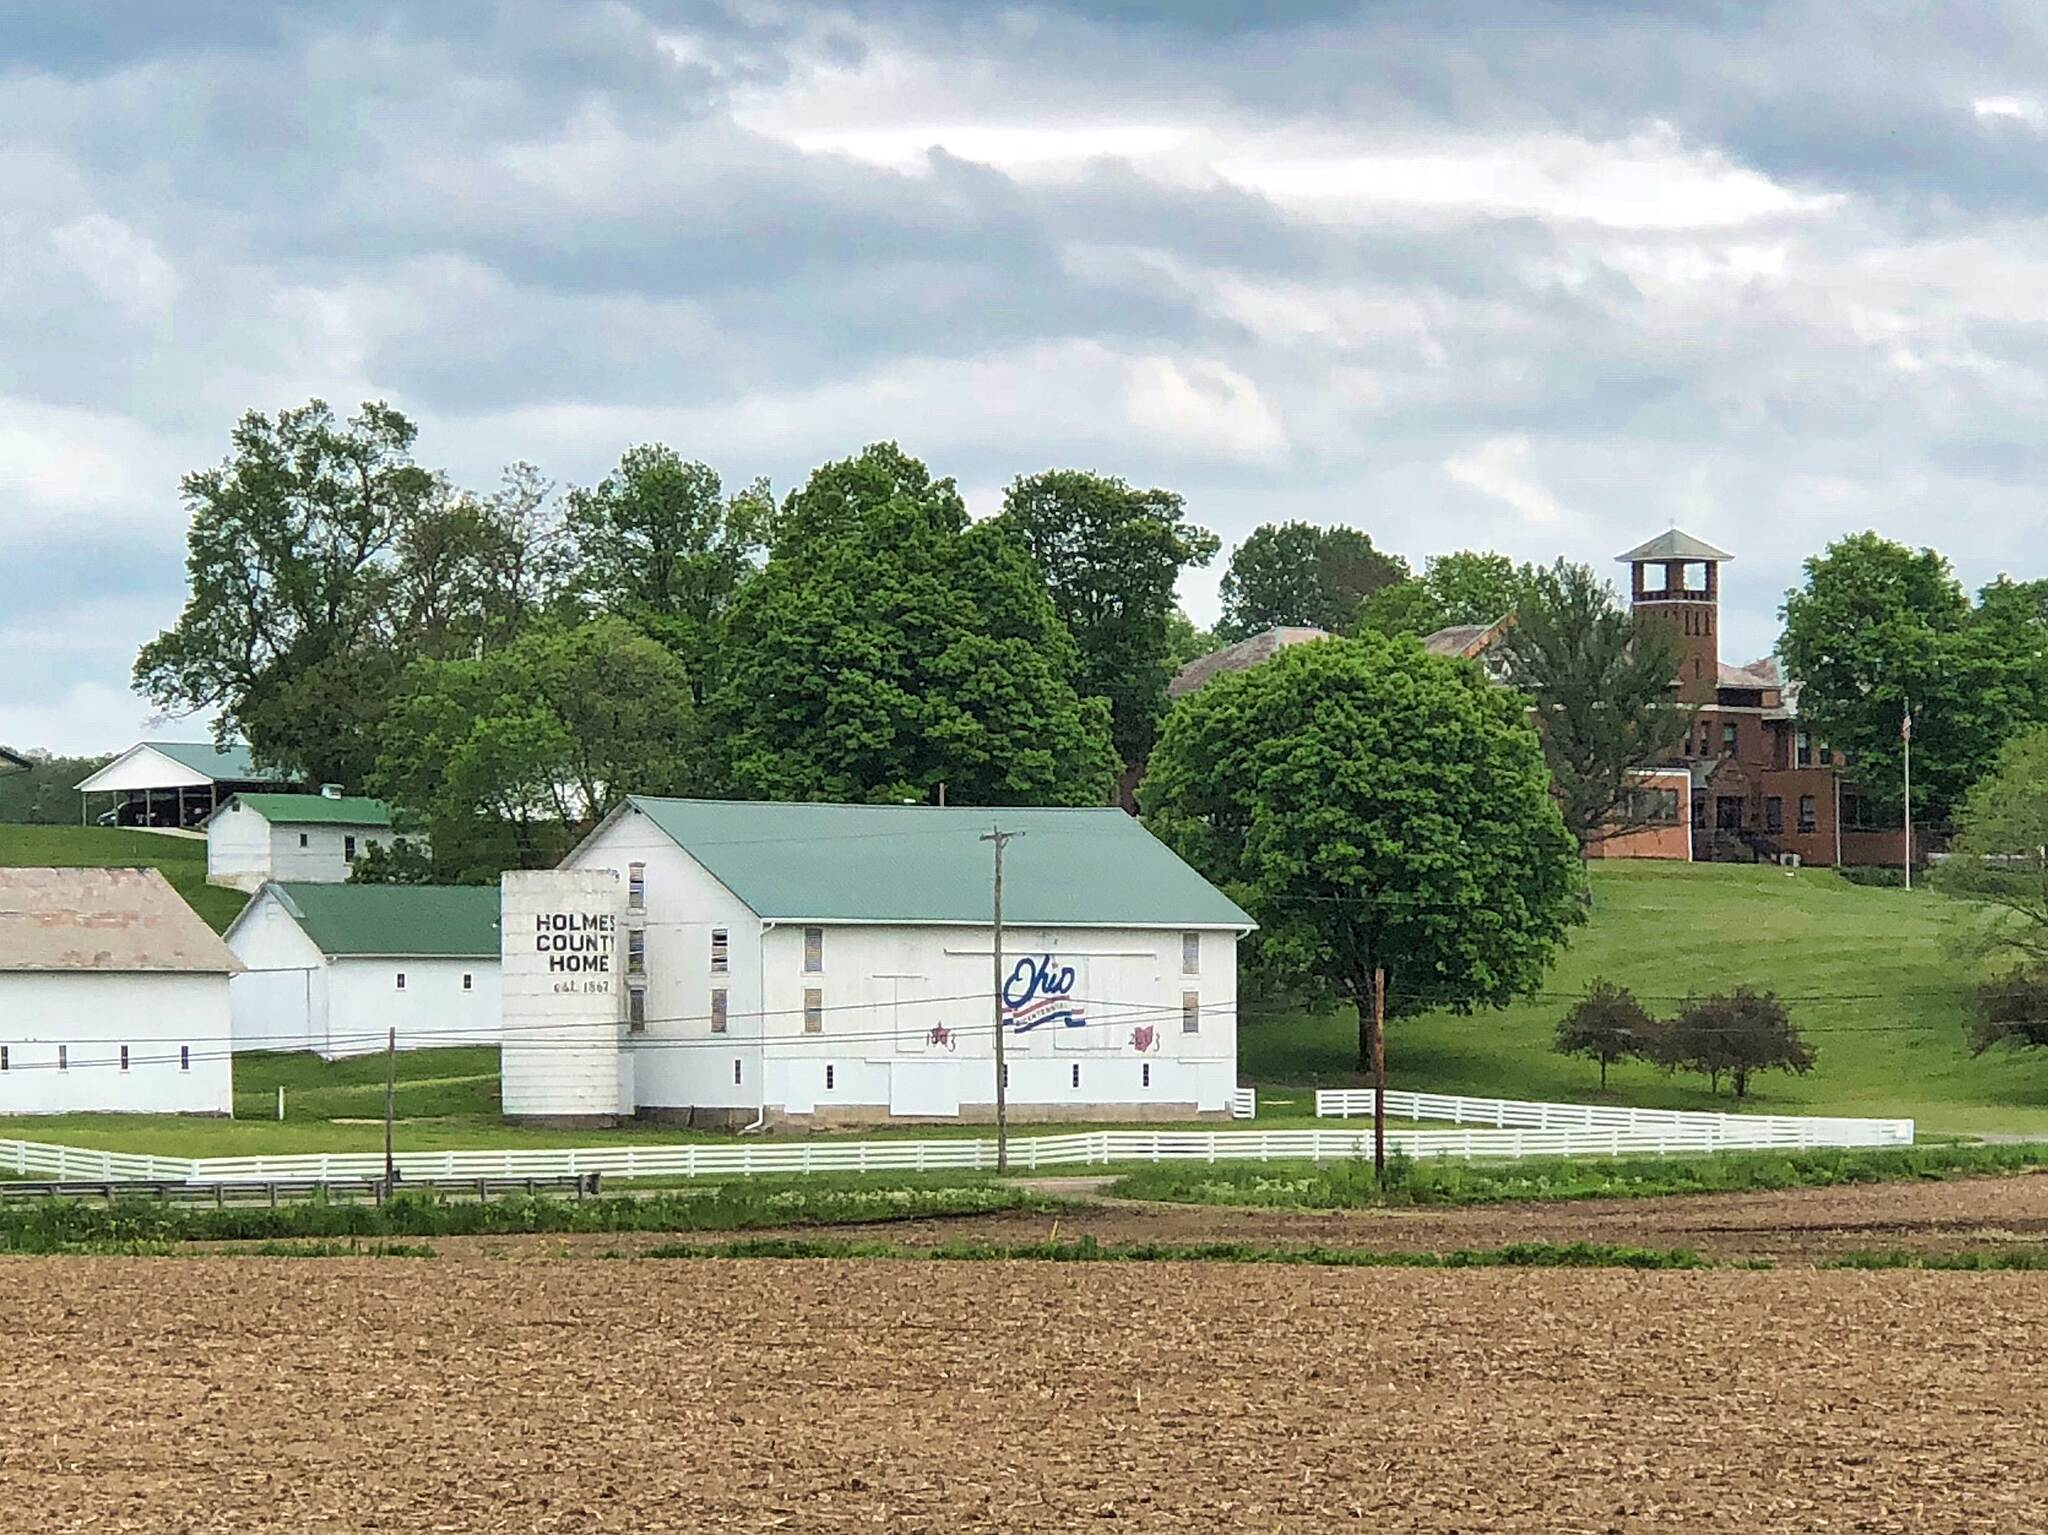 Holmes County Trail The Holmes County Home A view of the Holmes County Home complex from the trail.  May 18, 2018.